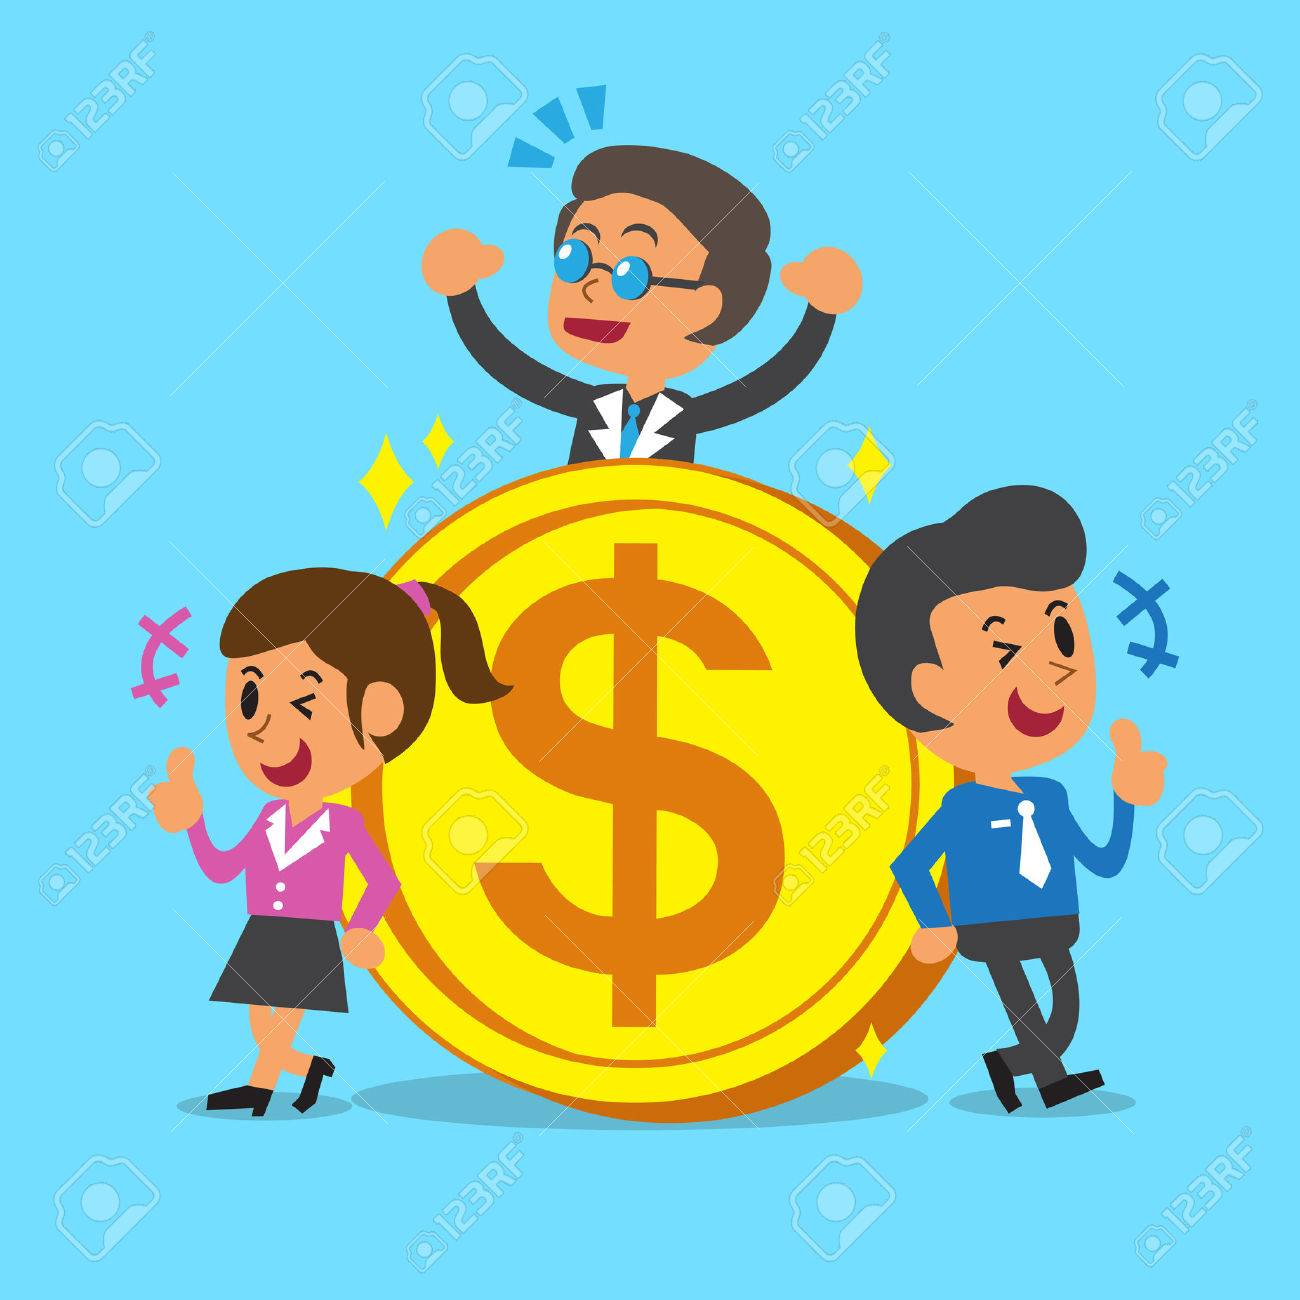 Business concept business team with a big coin - 45018092